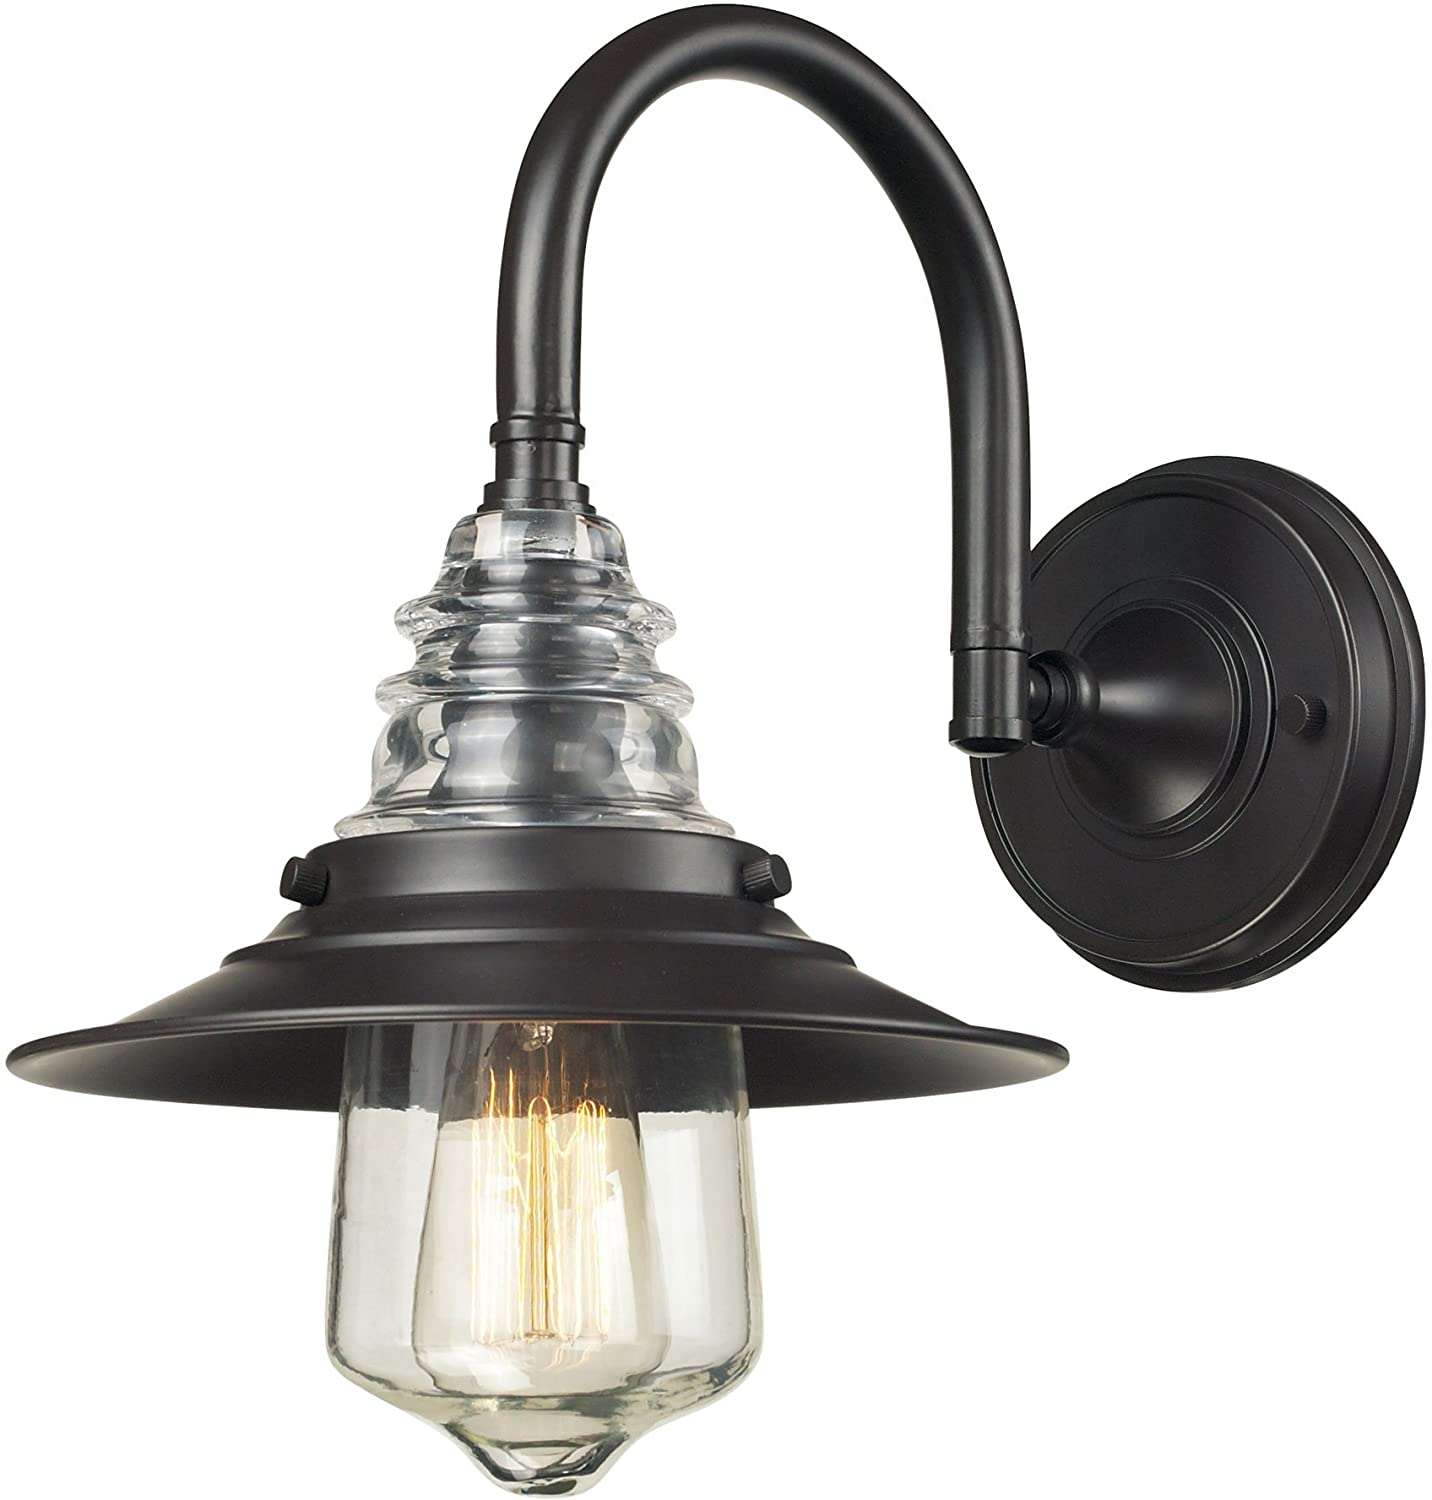 Elk 66812 1 9 by 14 inch insulator glass 1 light wall sconce elk 66812 1 9 by 14 inch insulator glass 1 light wall sconce oiled bronze finish amazon amipublicfo Image collections